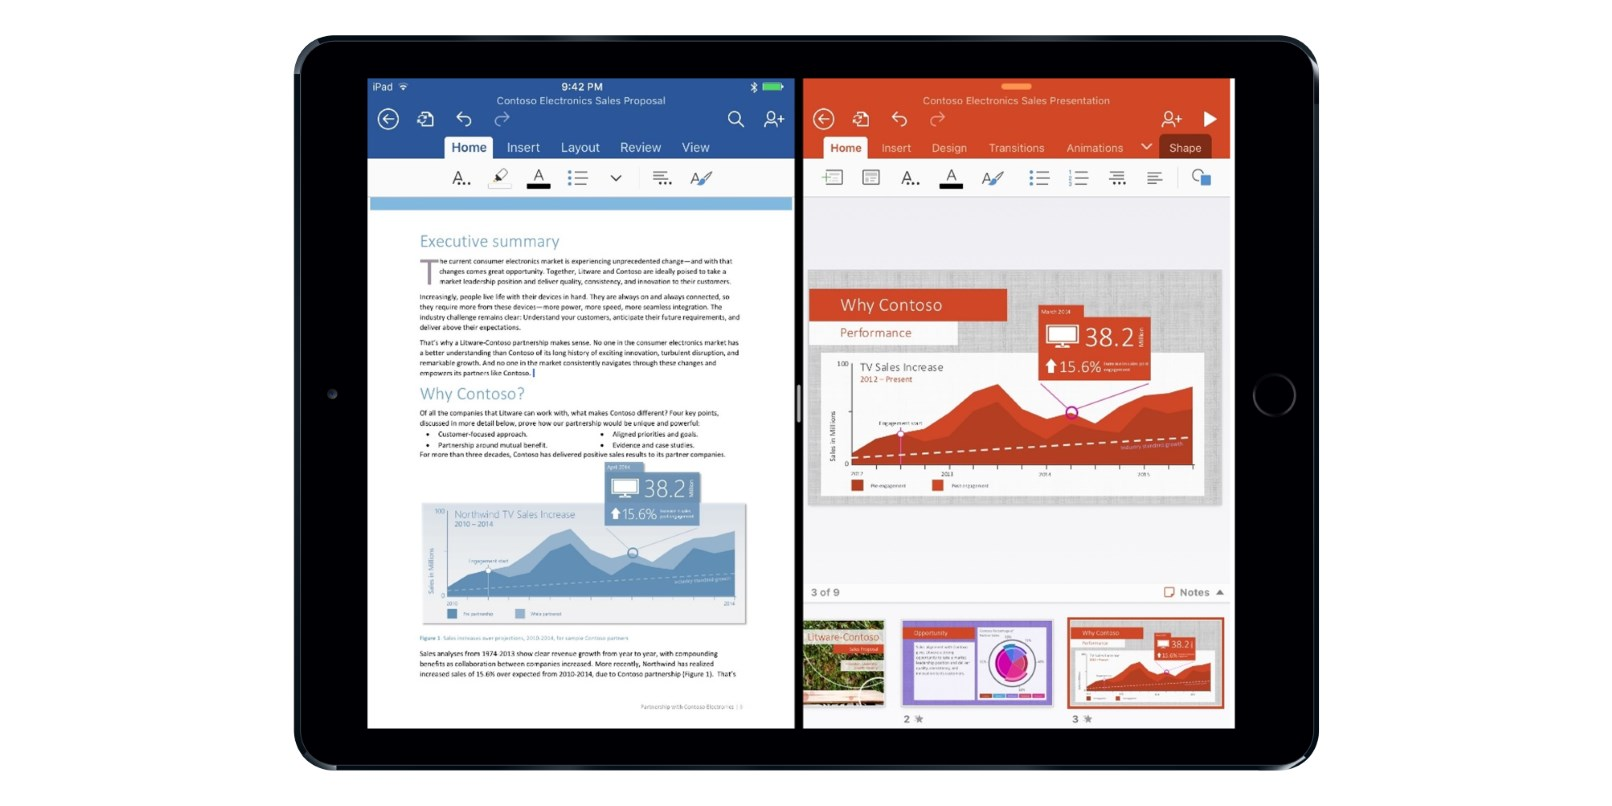 Office for iOS 9 will let you multitask and scribble on documents